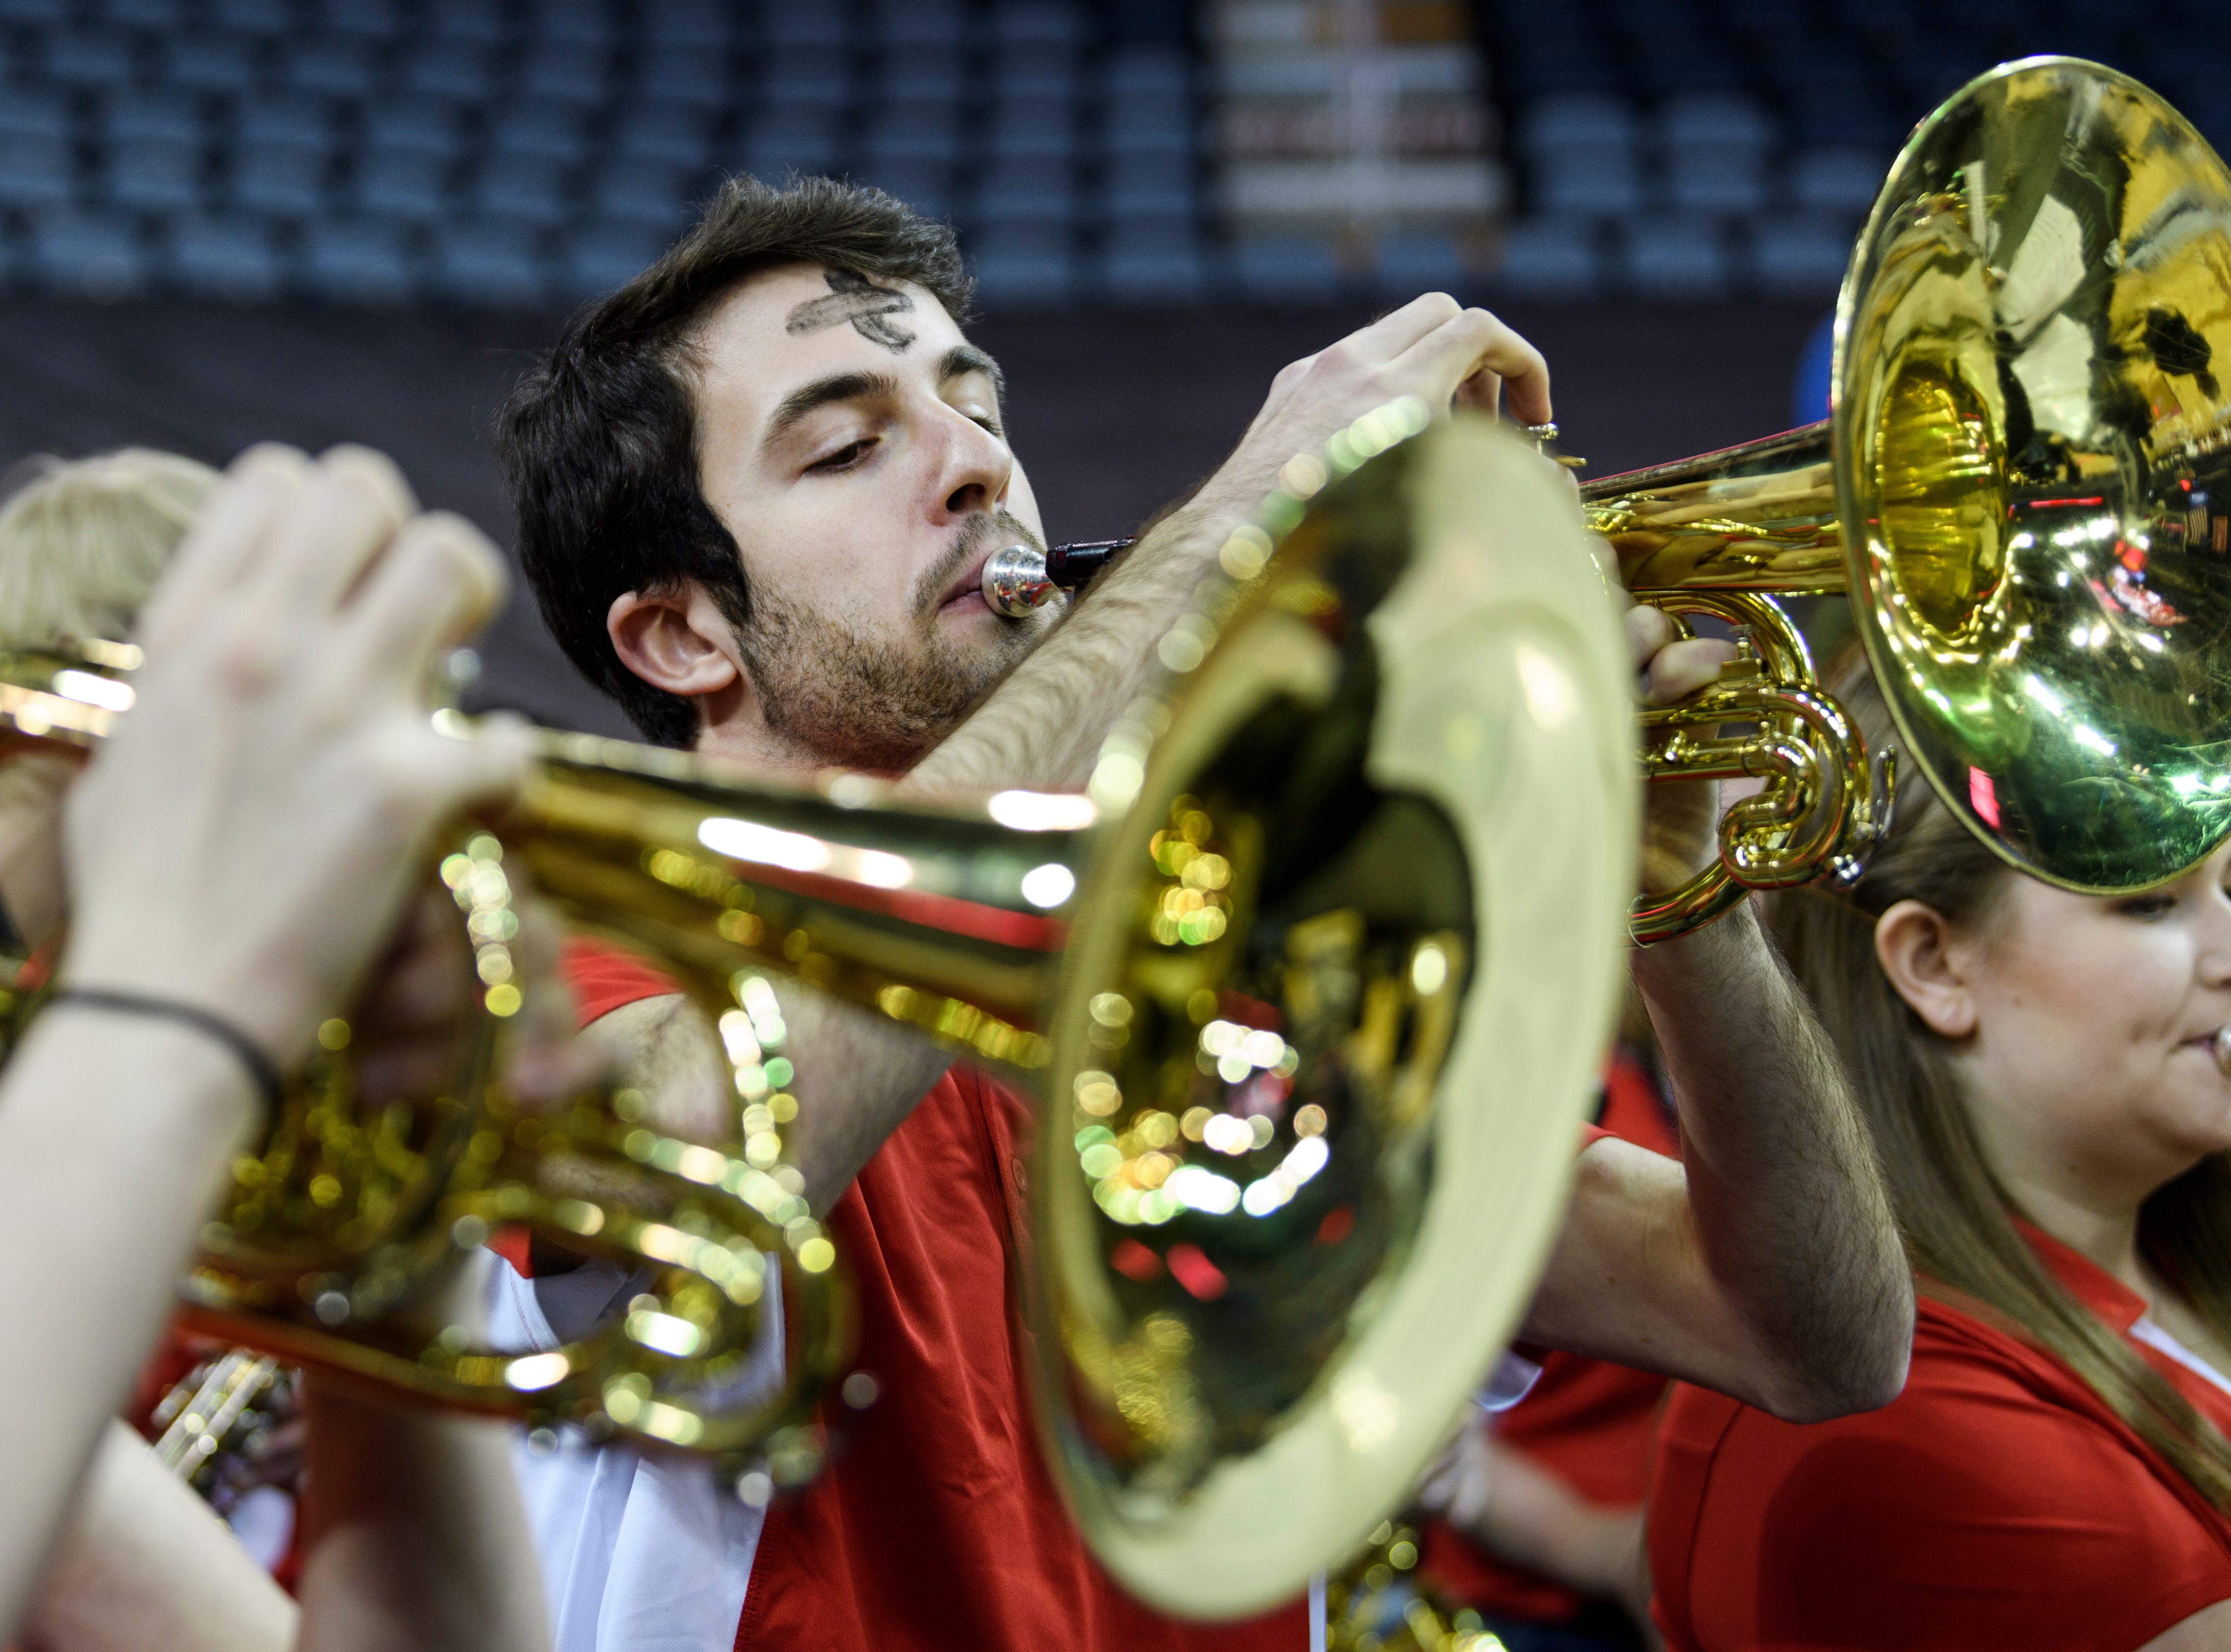 Patrick Ring, a member of Belmont University's Bruin Blast pep band, plays music during the women's basketball team game against the Southeast Missouri Redhawks in the first round of the Ohio Valley Conference Tournament at Ford Center in Evansville, Ind., Wednesday, March 6, 2019. The Bruins defeated the Redhawks, 74-65.